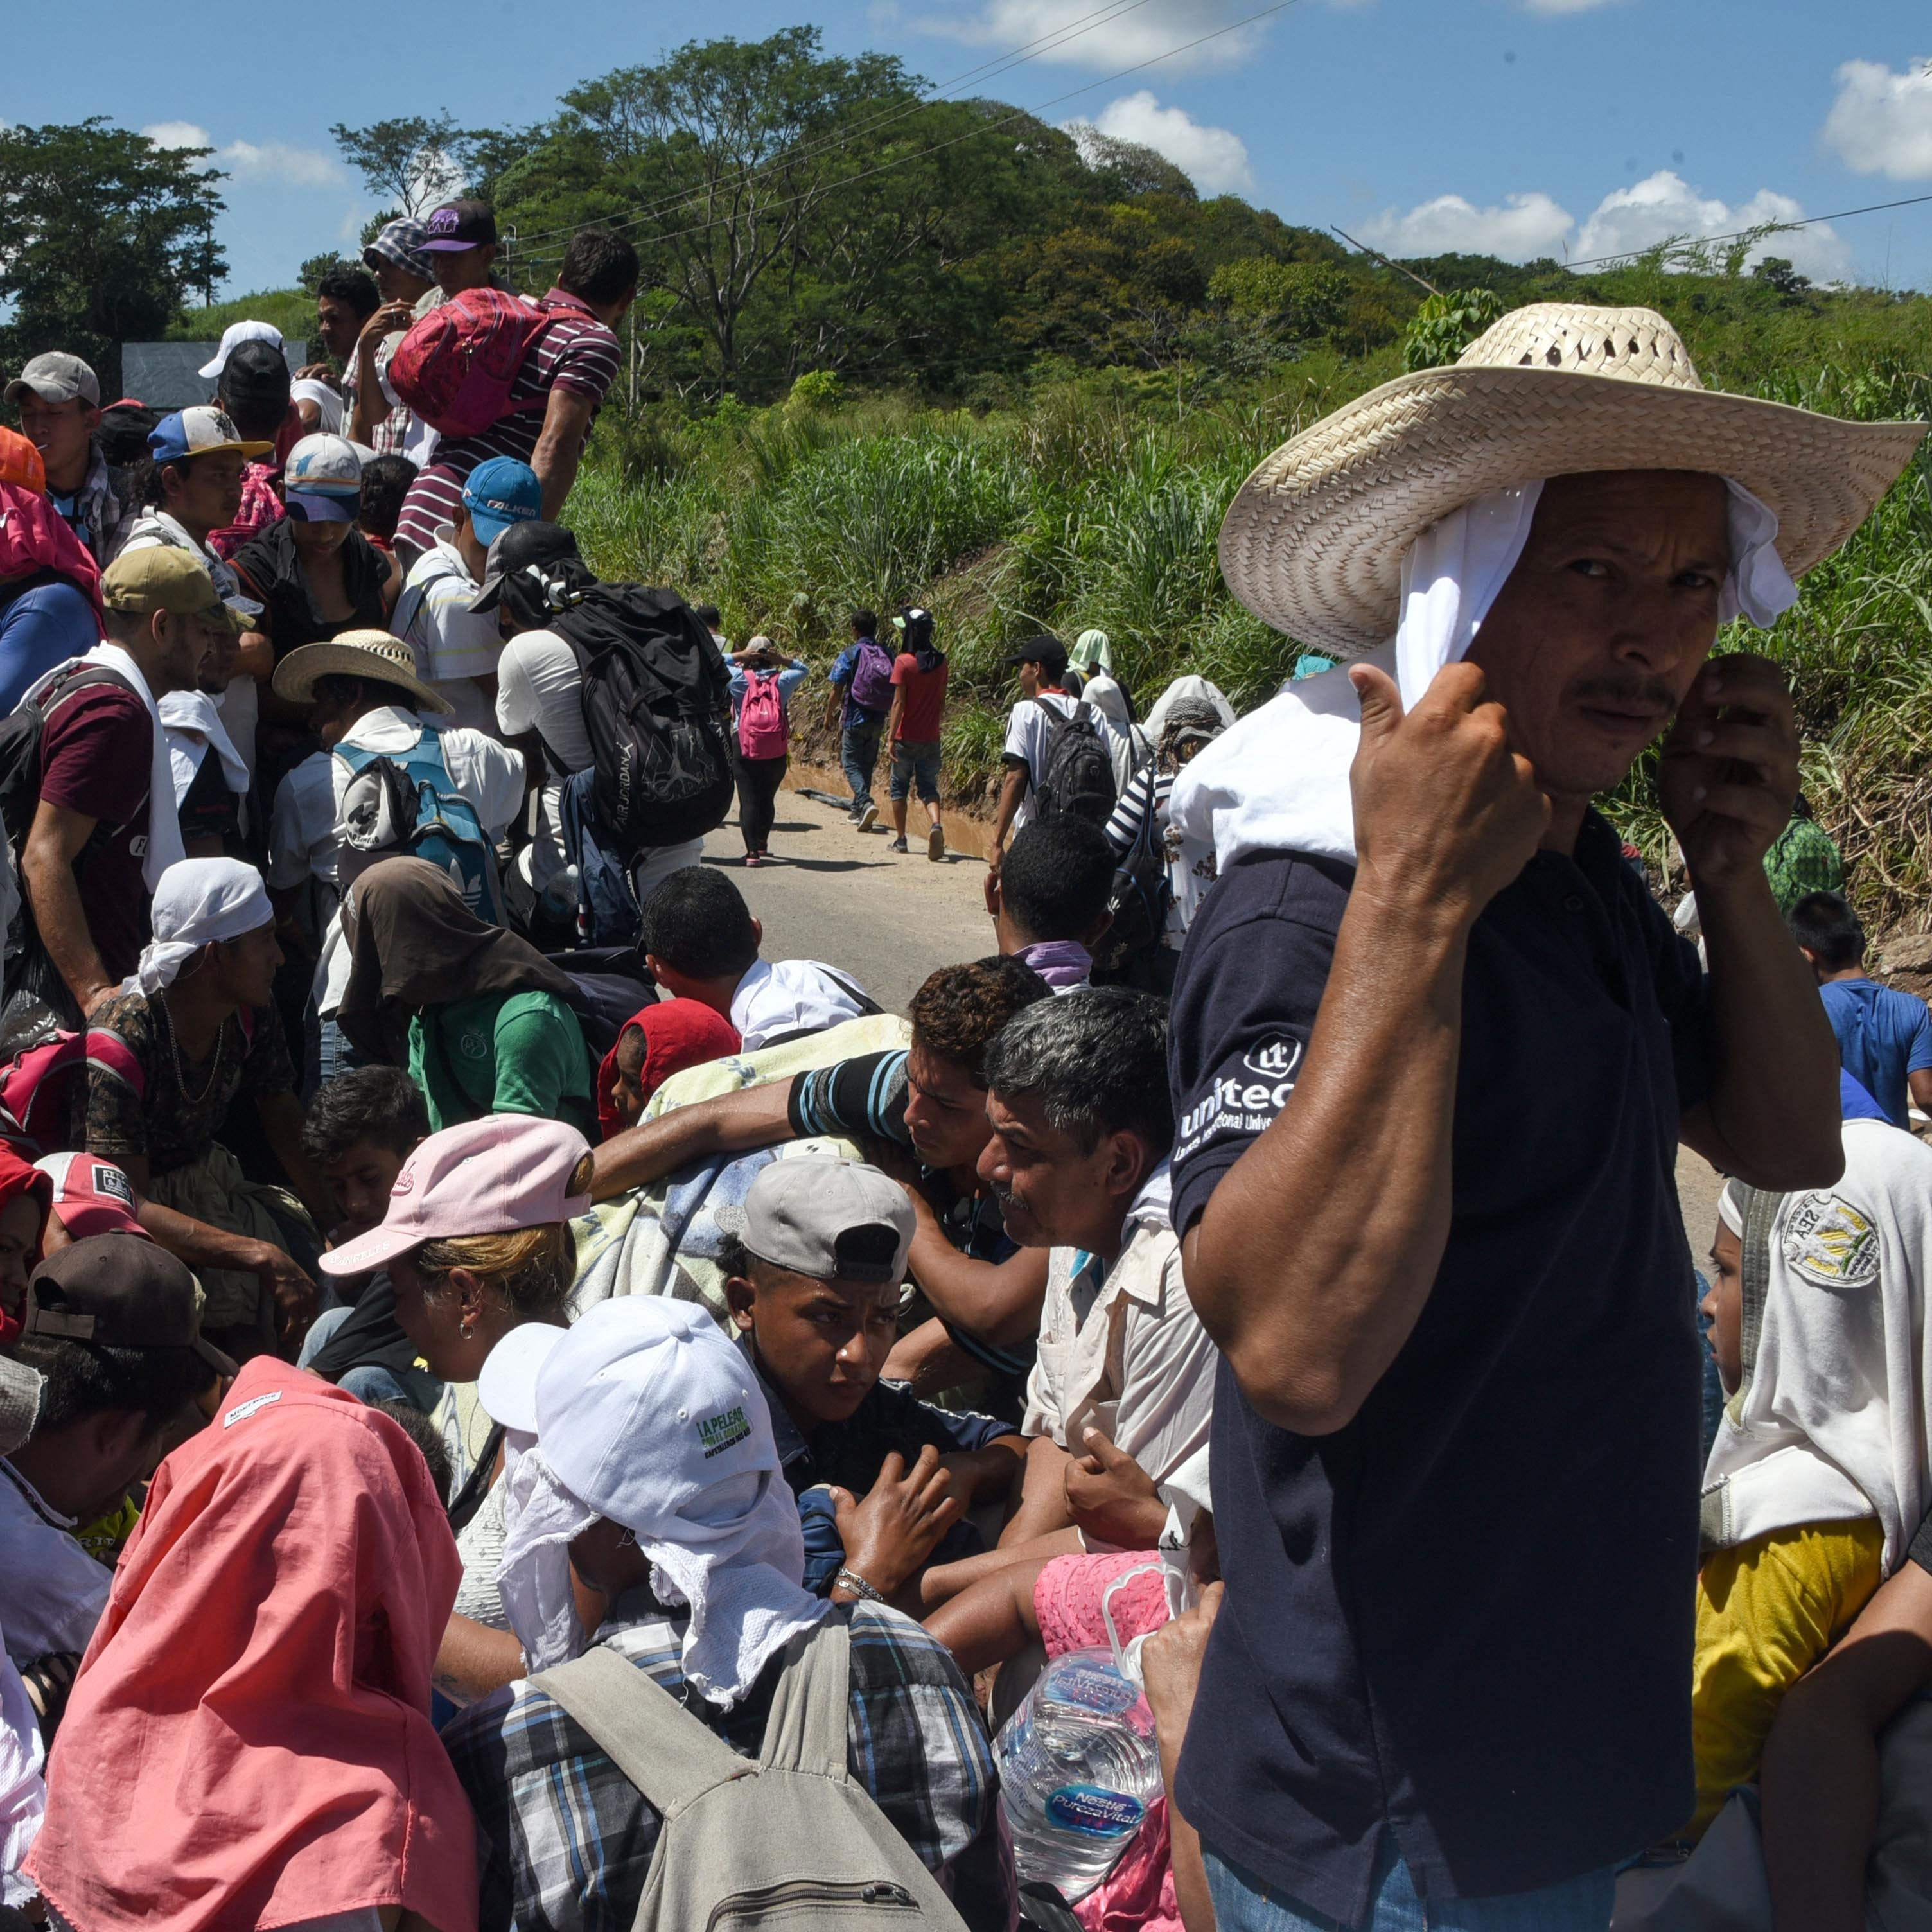 Trump keeps talking. Migrants keep walking.